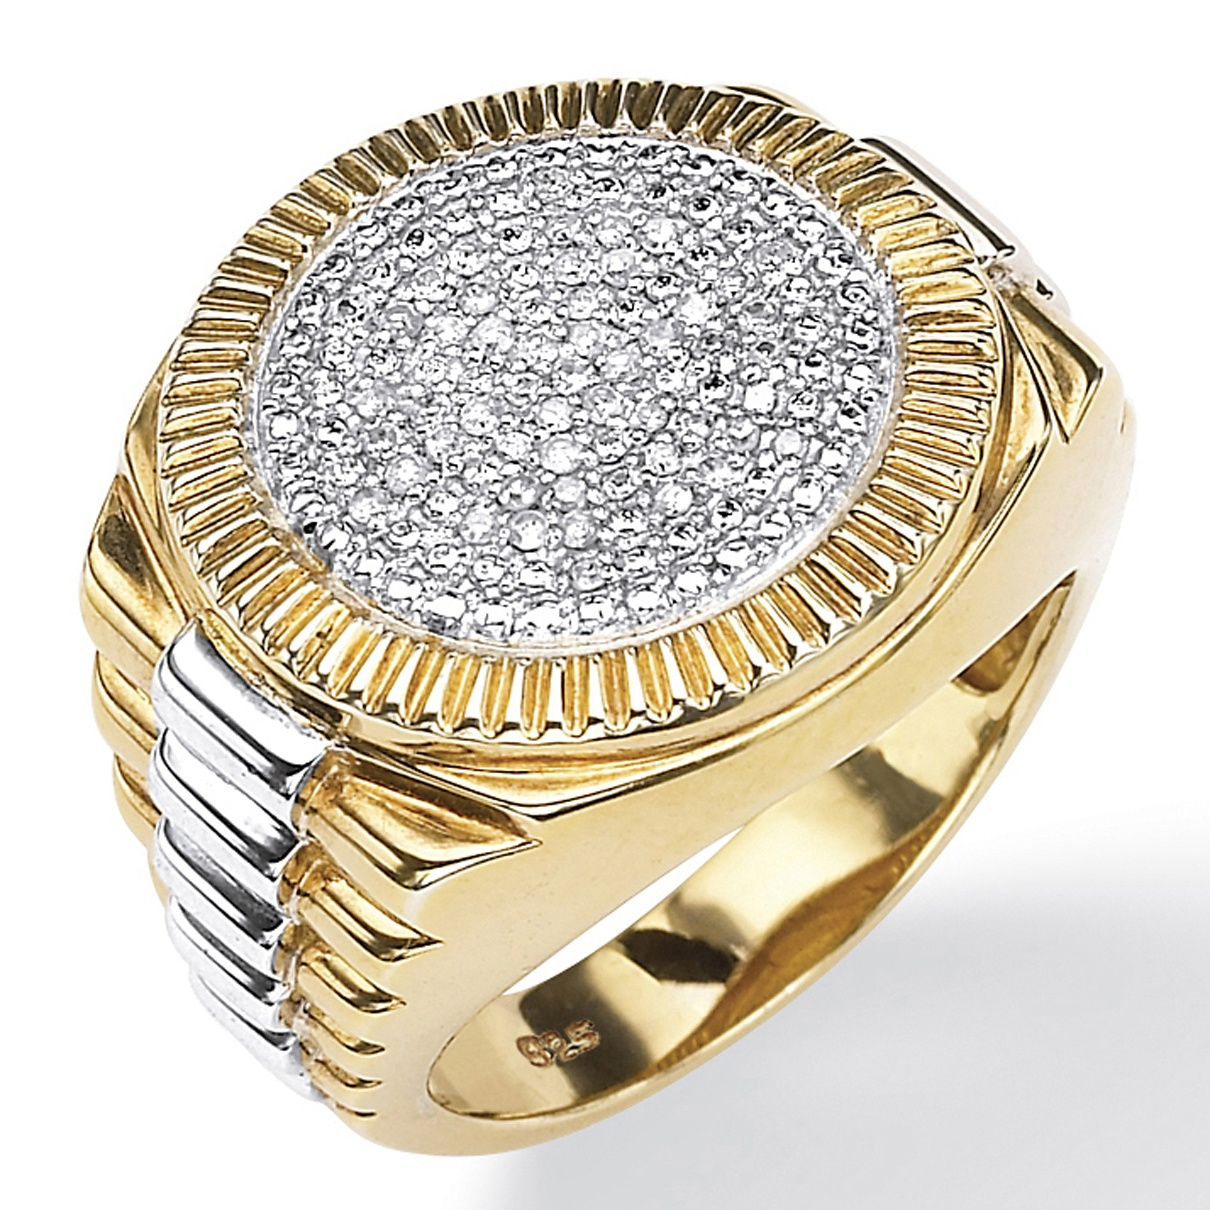 Men's 1/7 TCW Round Pave Diamond Two-Tone Ribbed Ring in 18k Gold over Sterling Silver